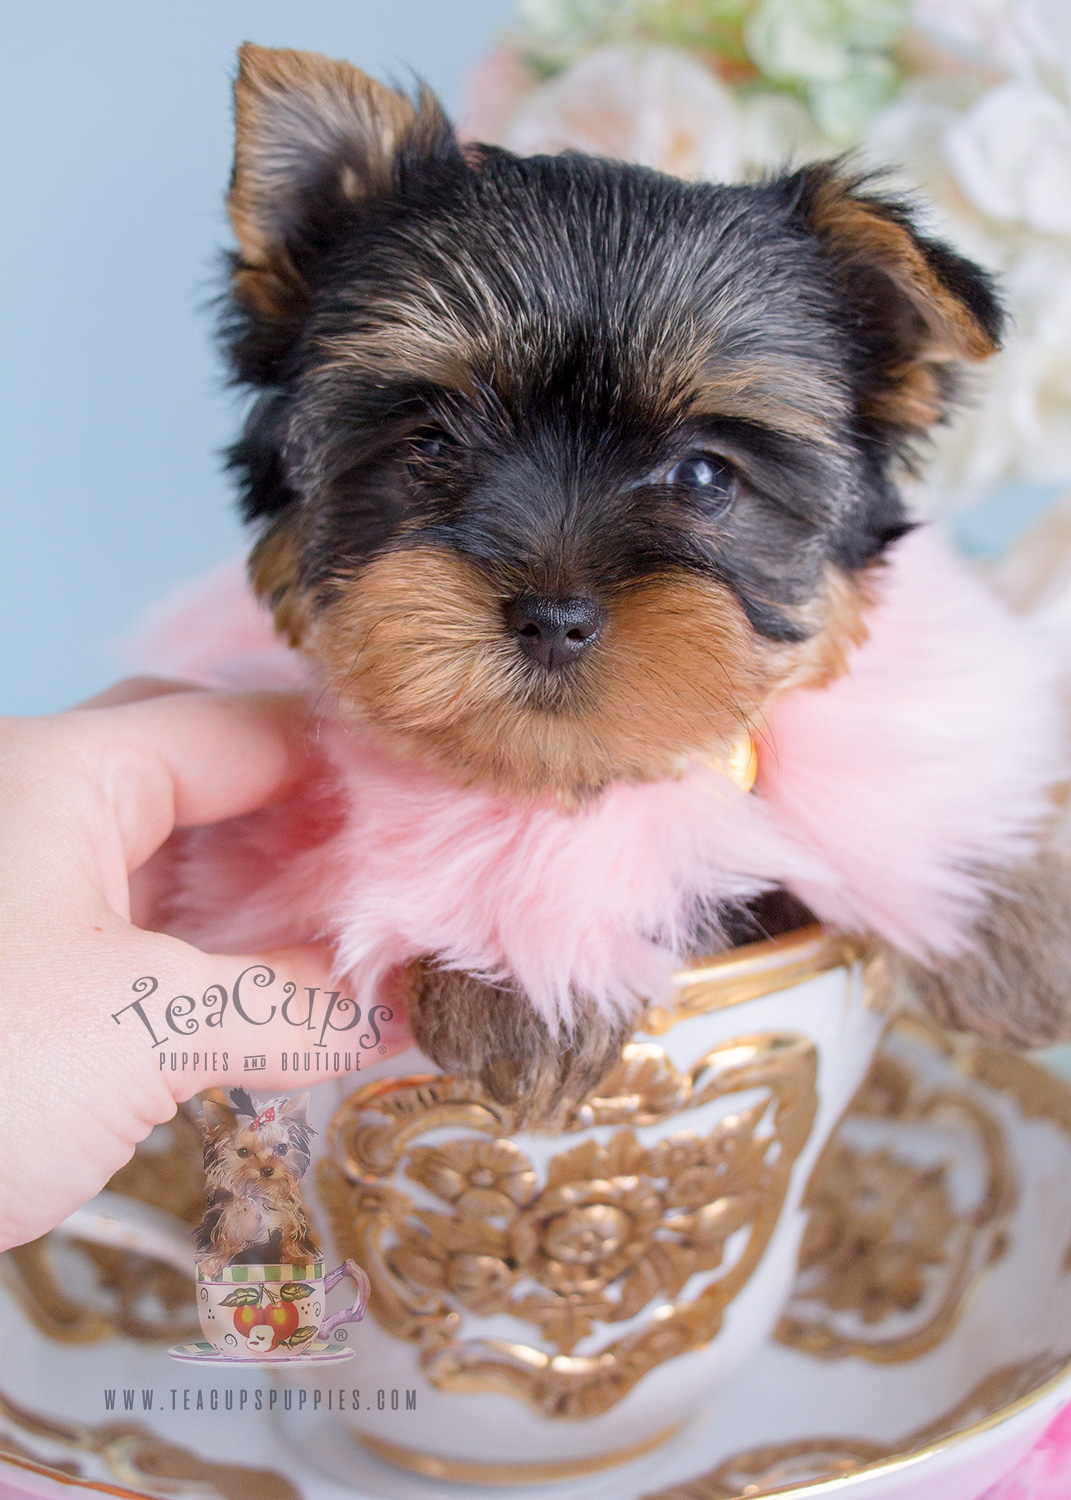 #238 Teacup Puppies Yorkie Puppy For Sale